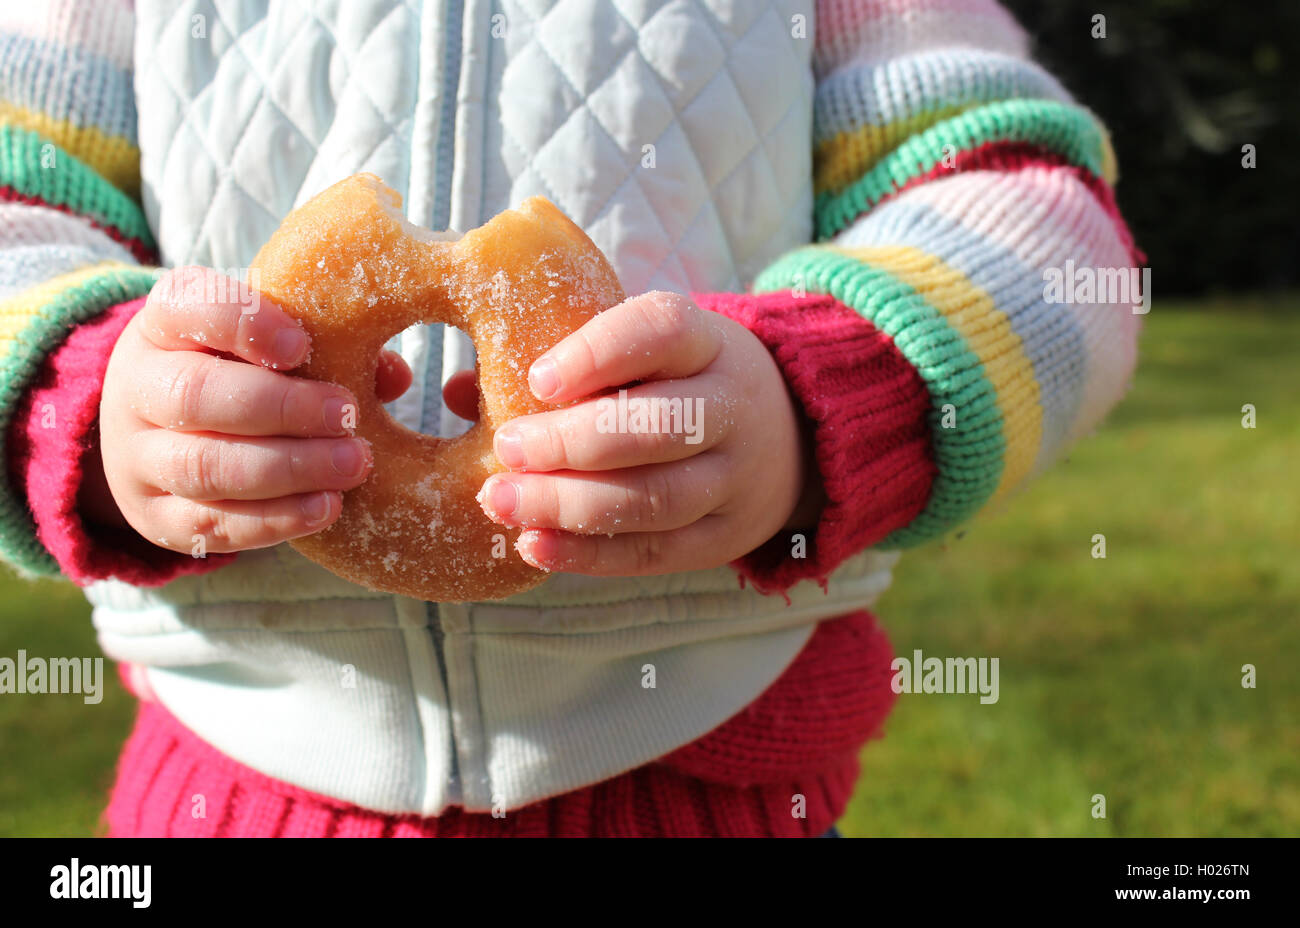 Girl over eating and snacking on unhealthy food - Stock Image